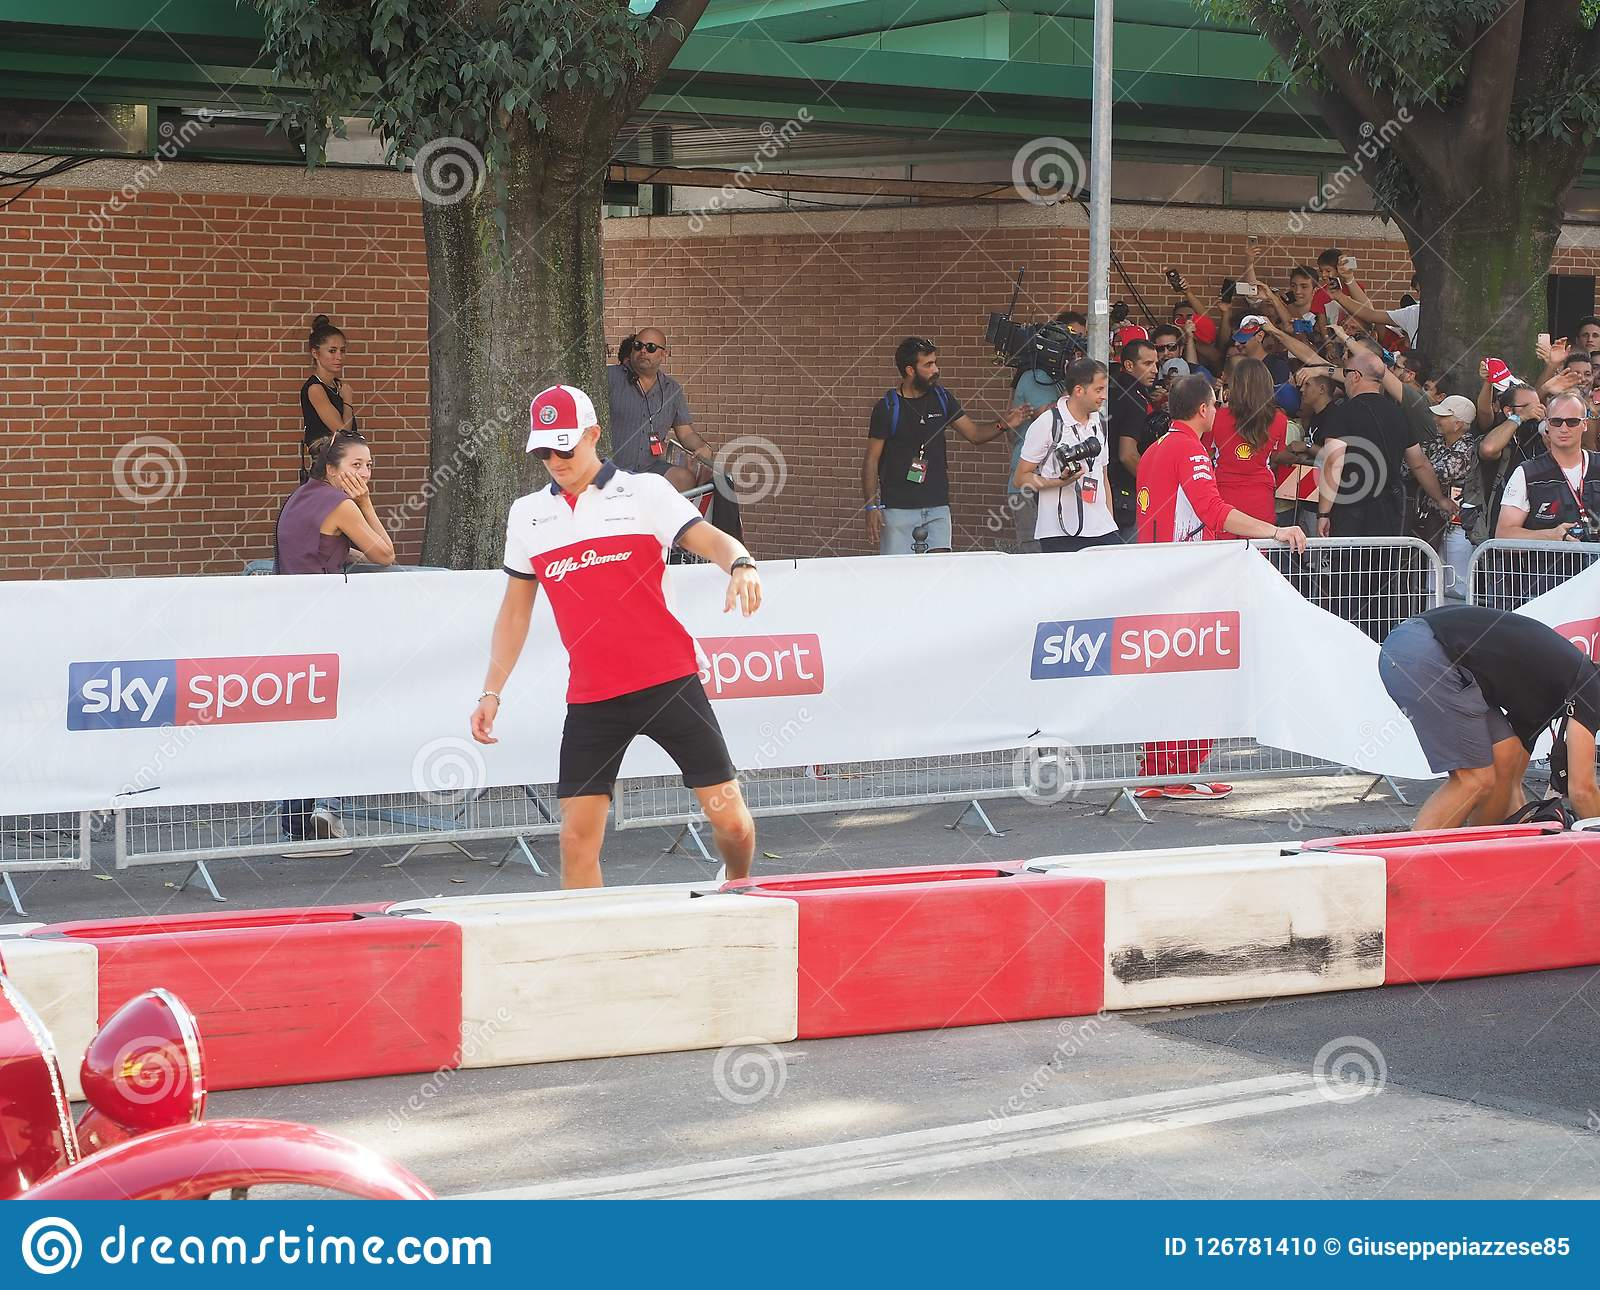 Milan, Italy - August 29, 2018: Marcus Ericsson entering the track